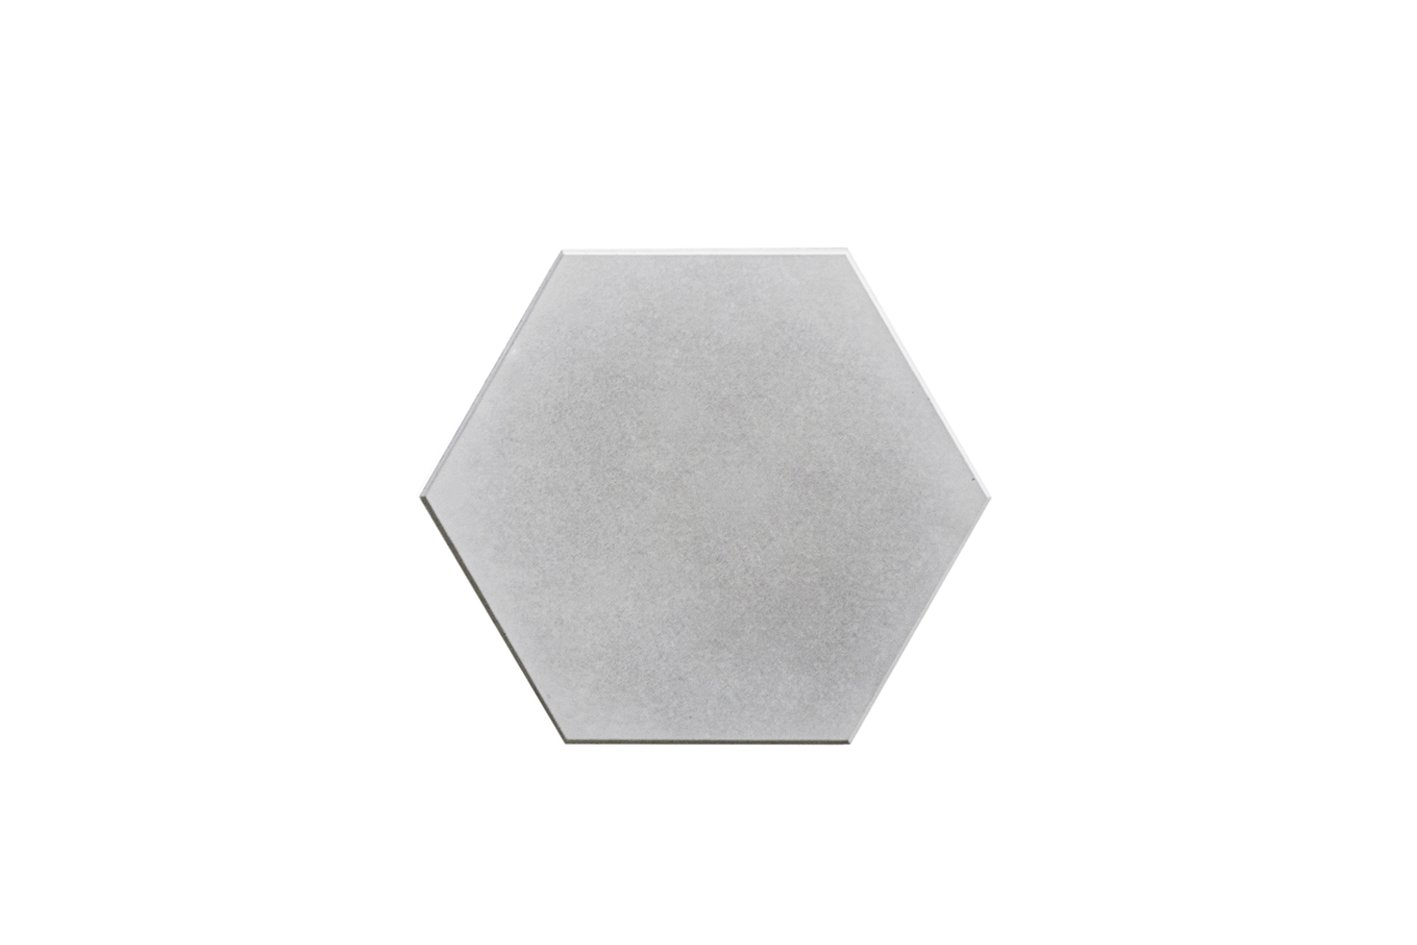 SAN Flat Decorative Concrete Wall Tile, Wall Tile - Luvurwall